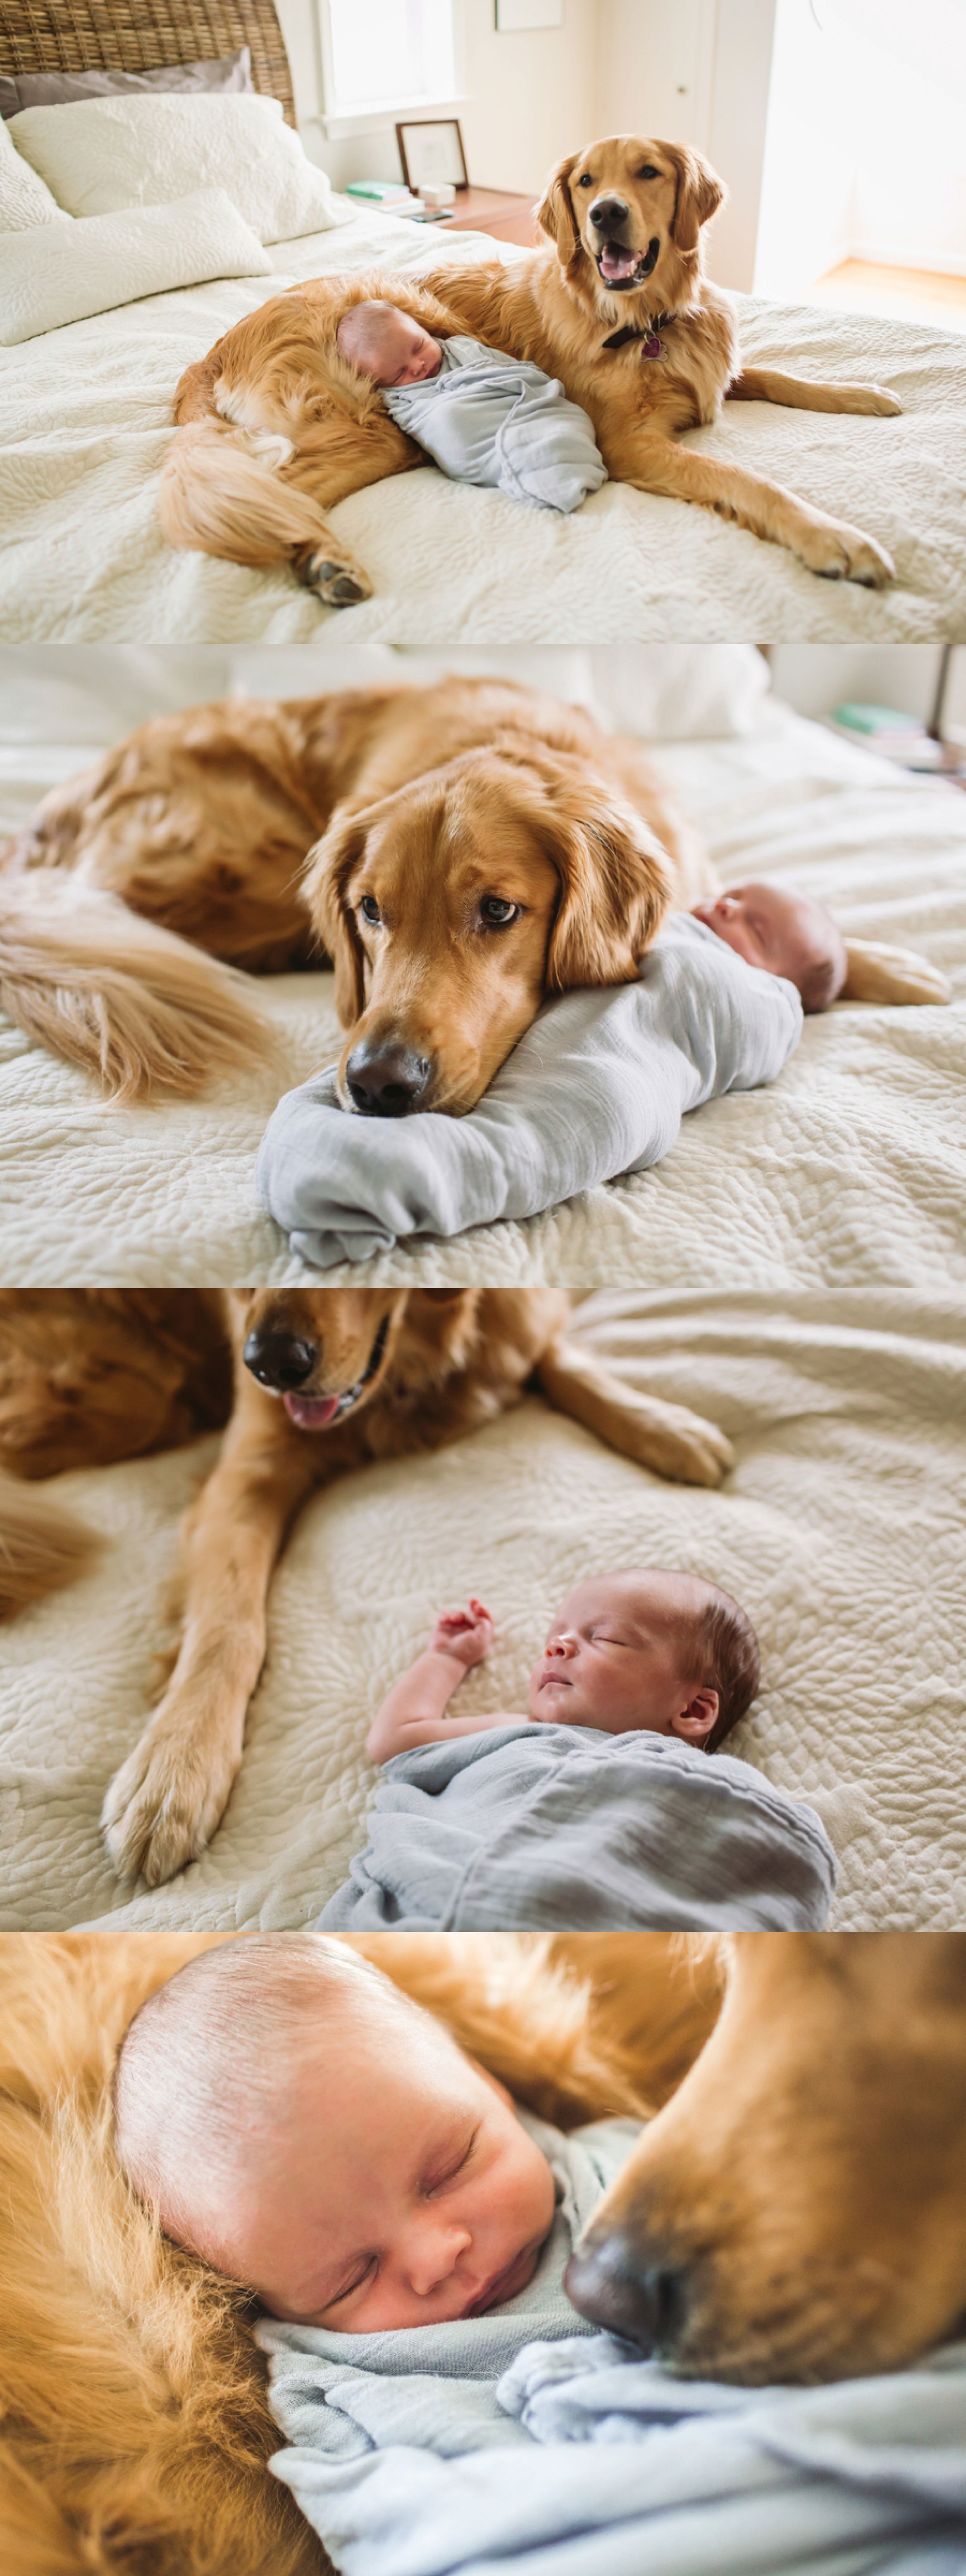 Newborn Pictures With A Pet Lifestyle Picture Ideas